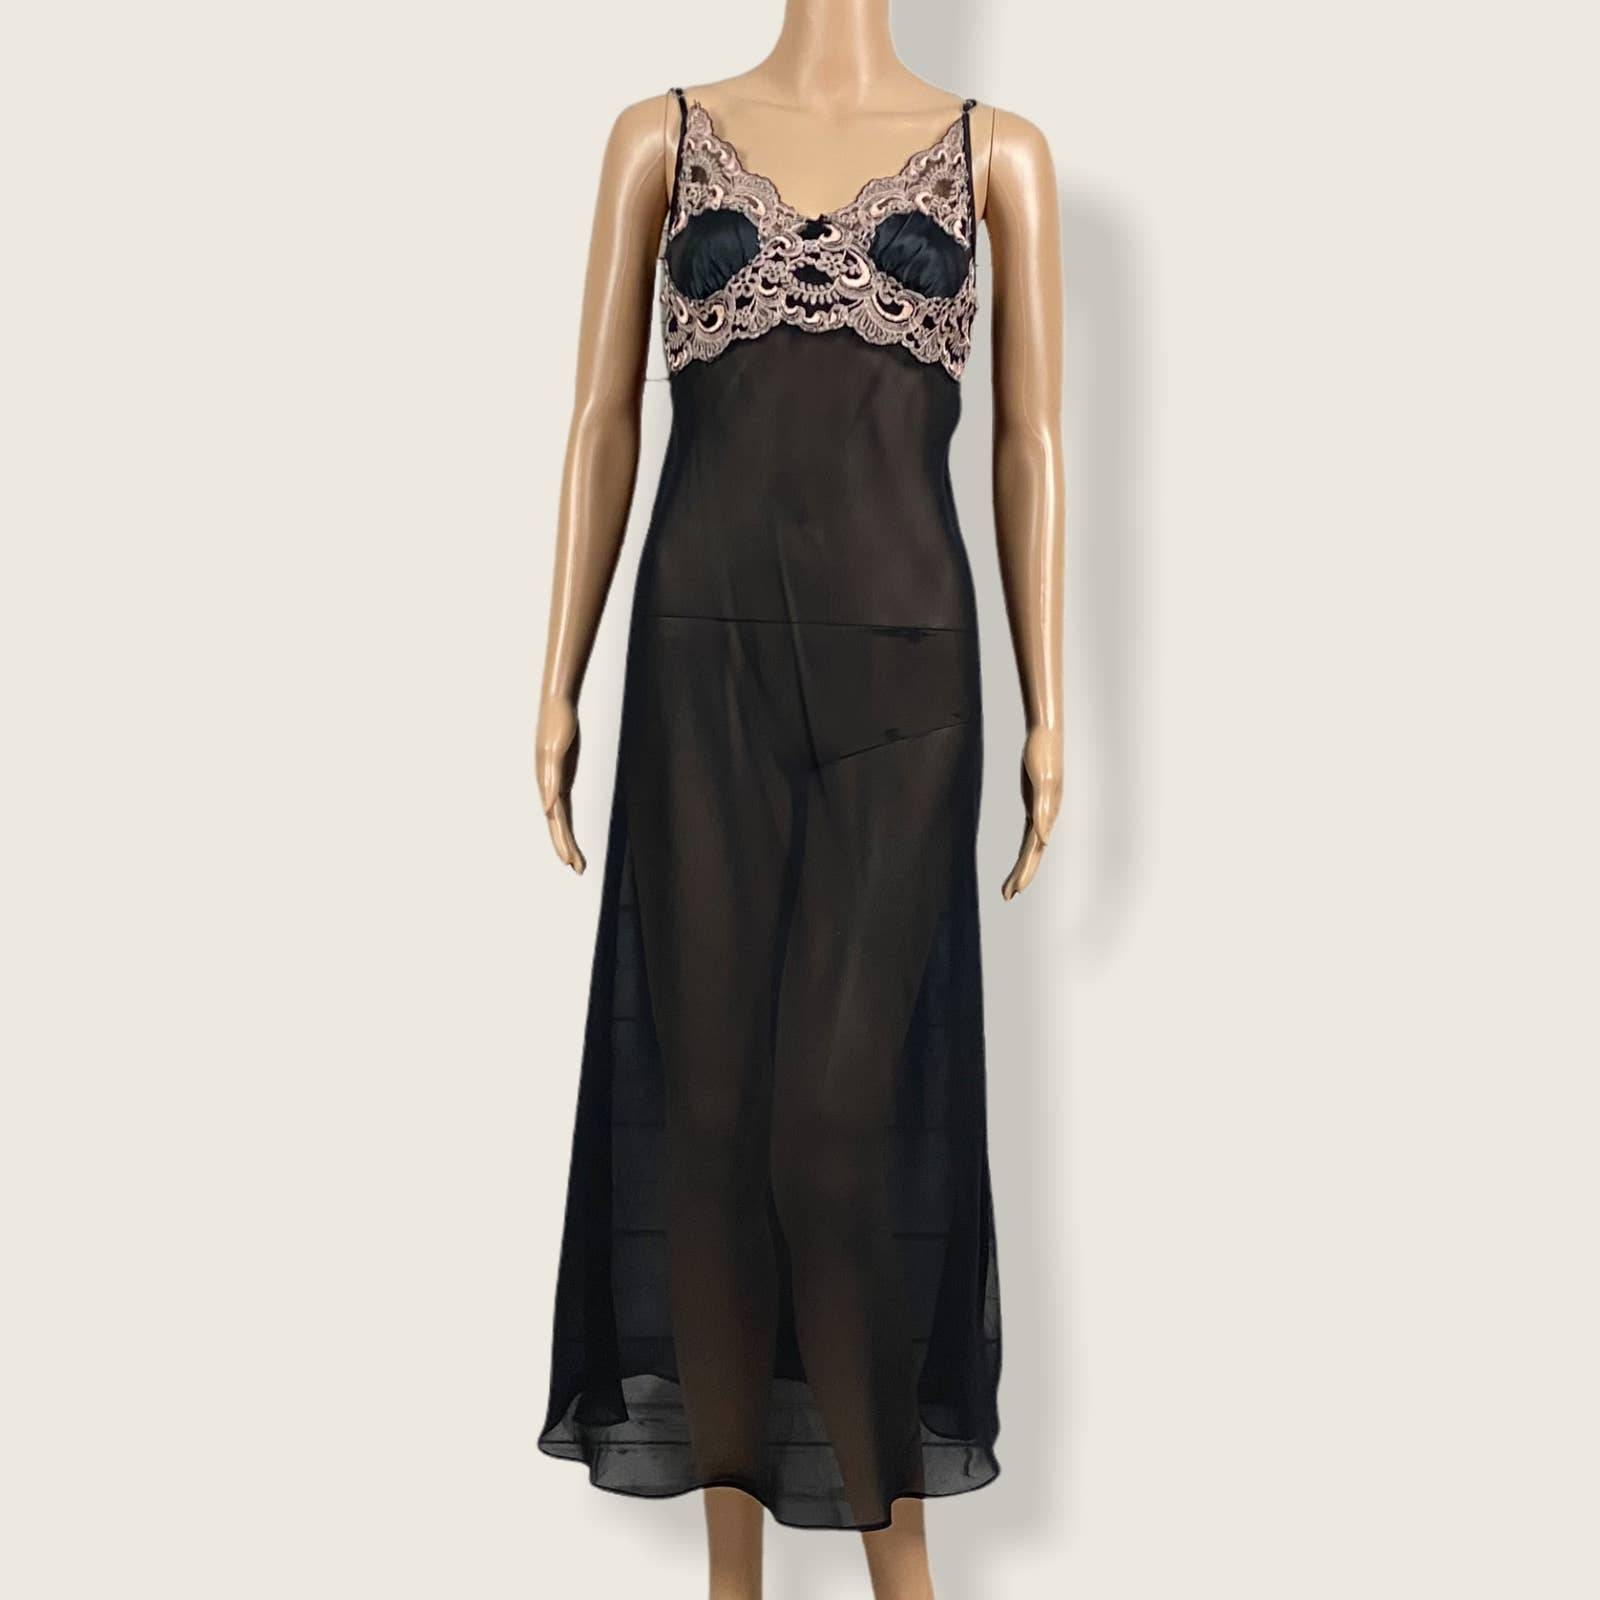 Delicates Sheer Lace Negligee Nightgown